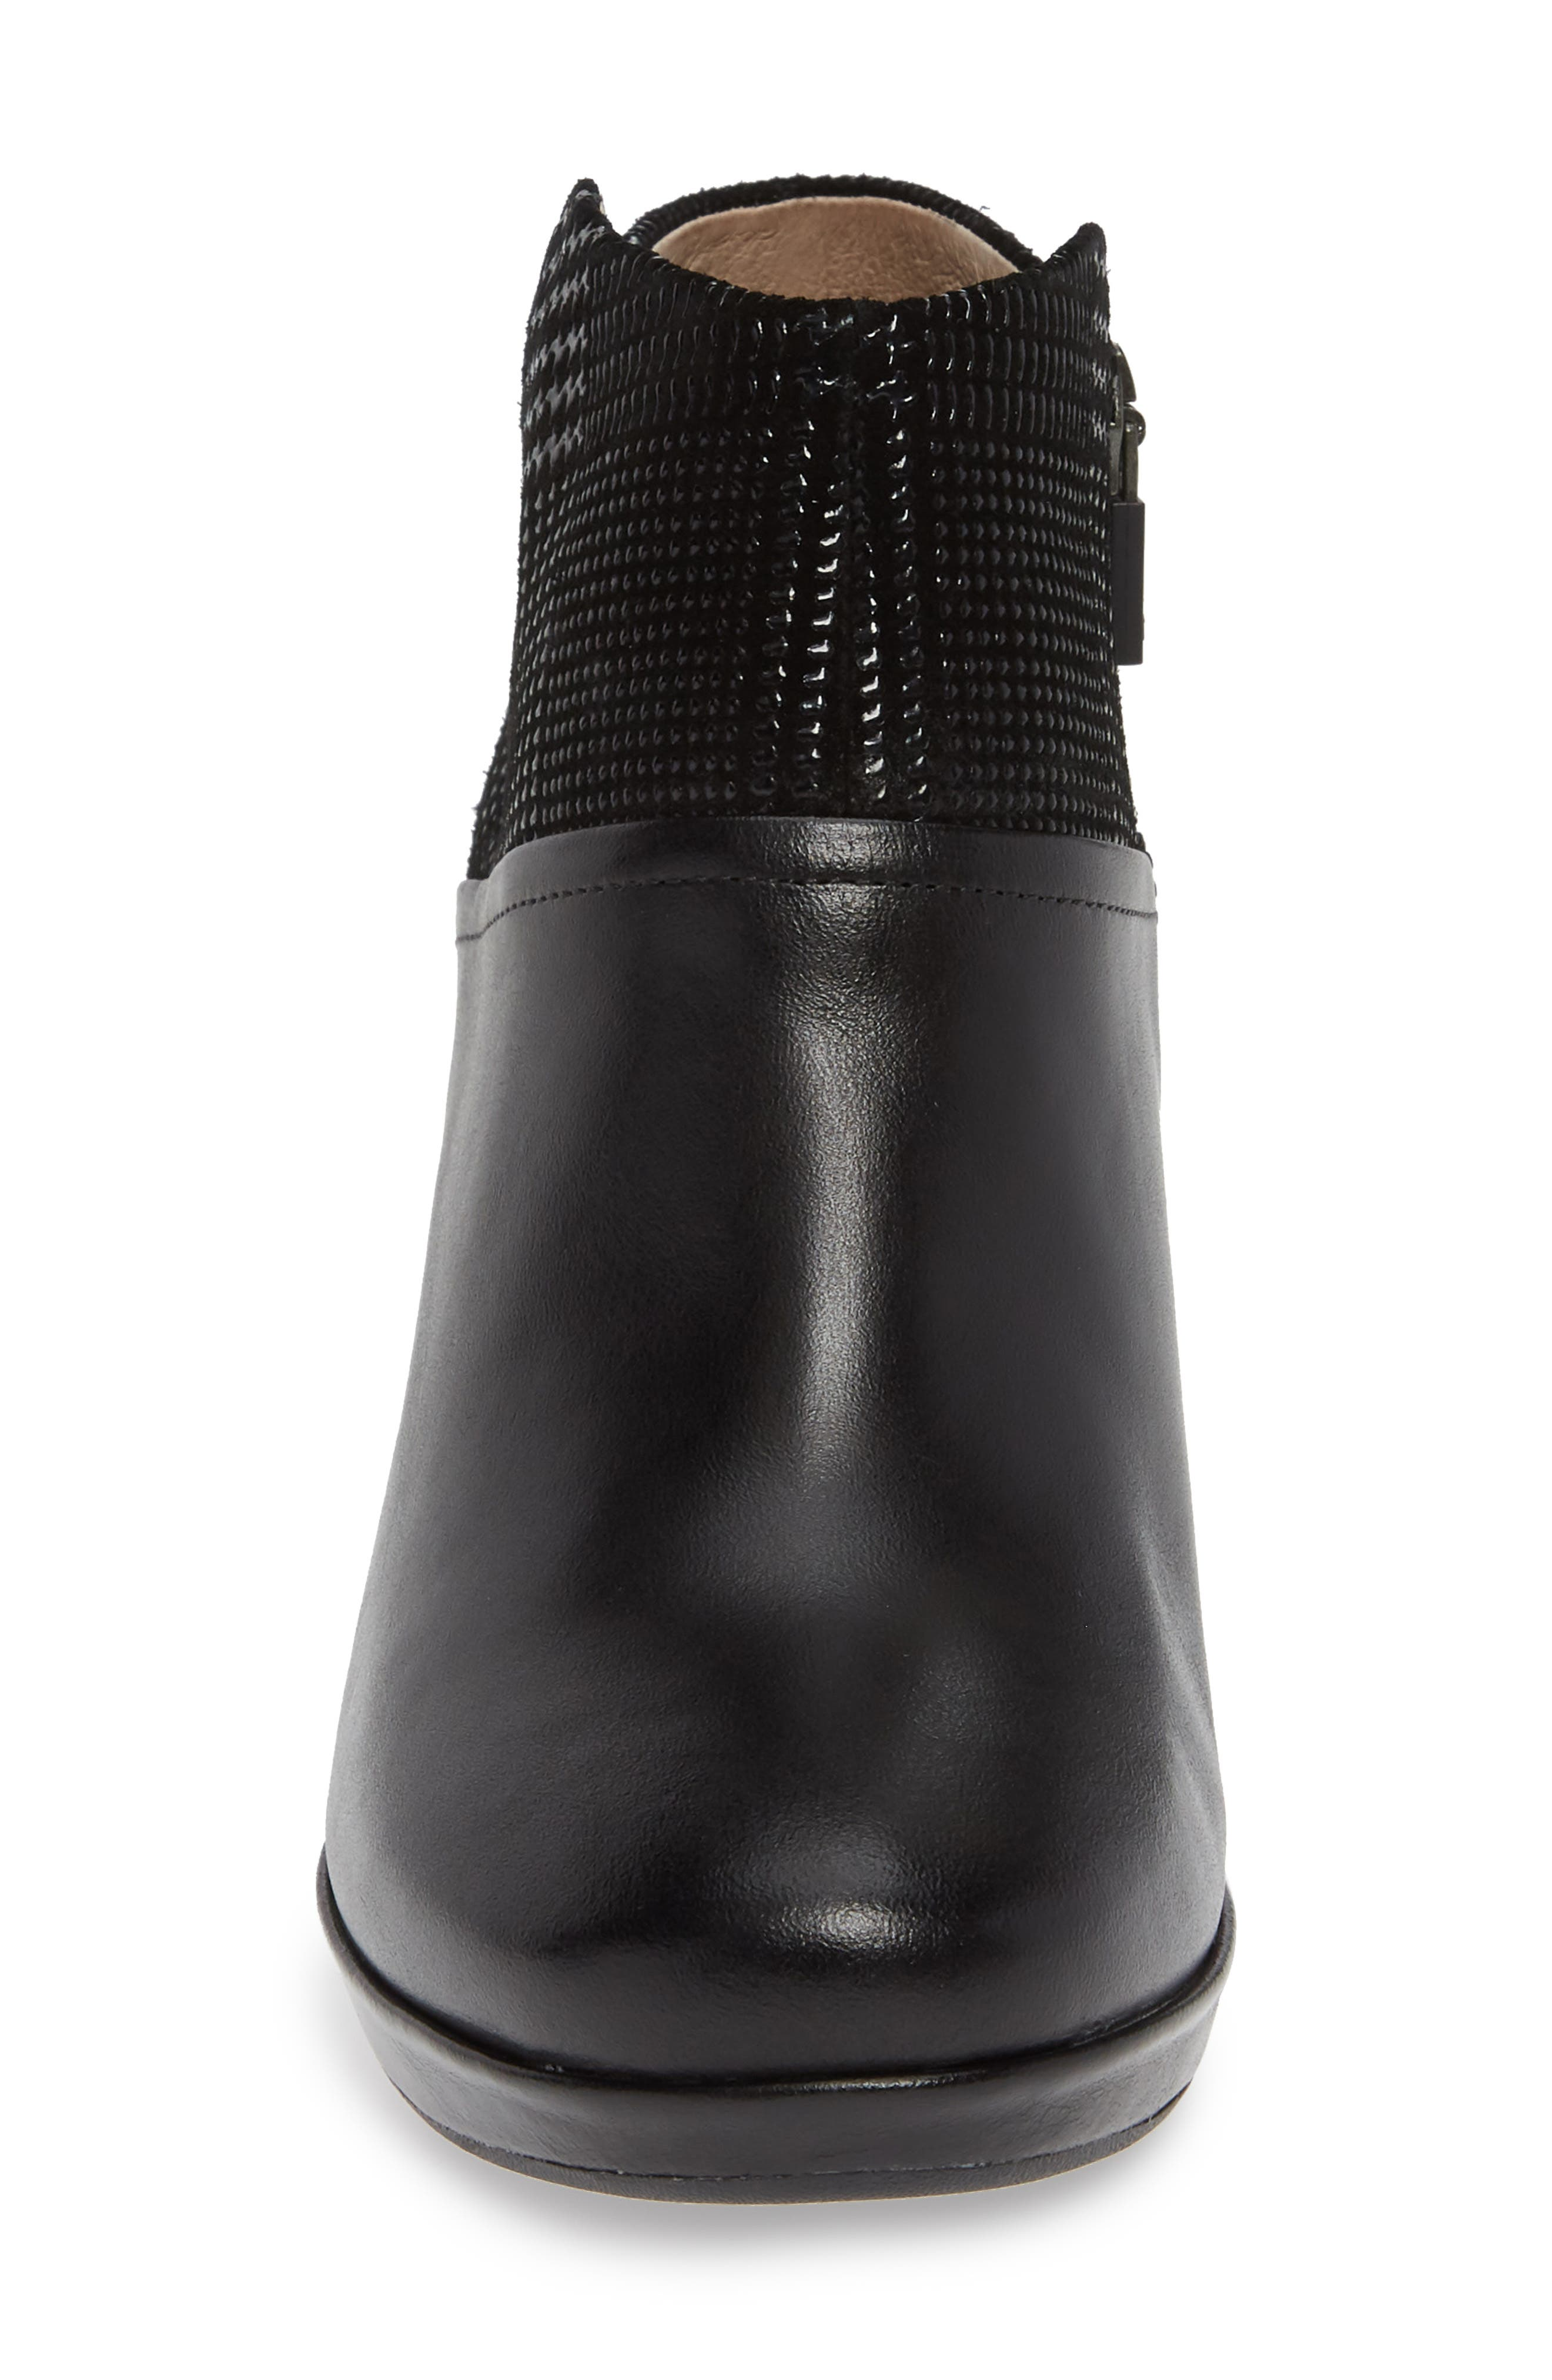 Miley Burnished Leather Bootie,                             Alternate thumbnail 4, color,                             BLACK BURNISHED LEATHER